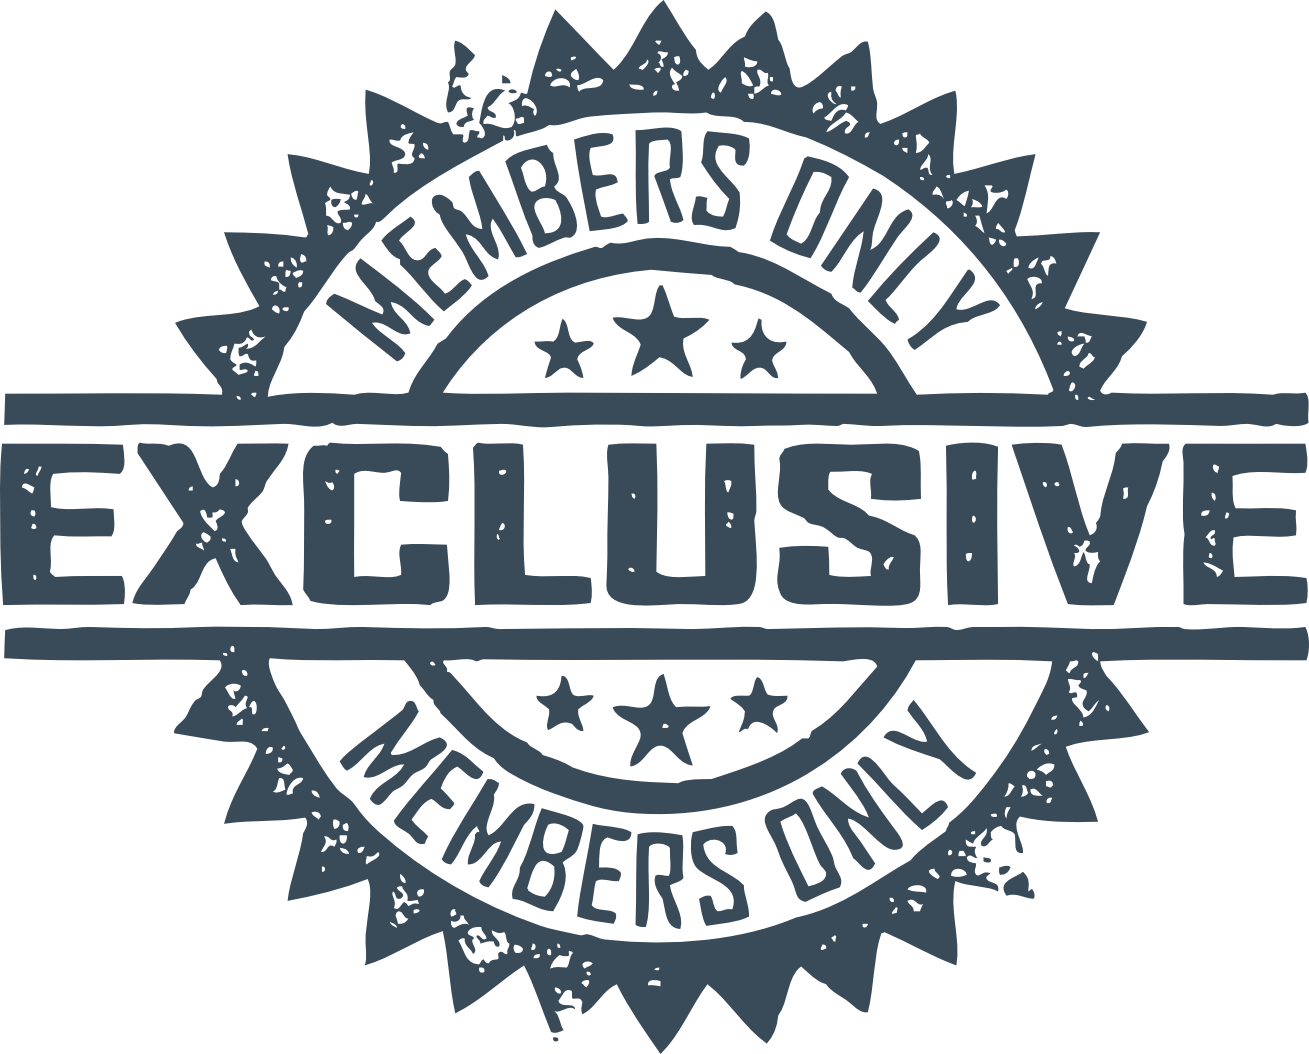 members-only.png